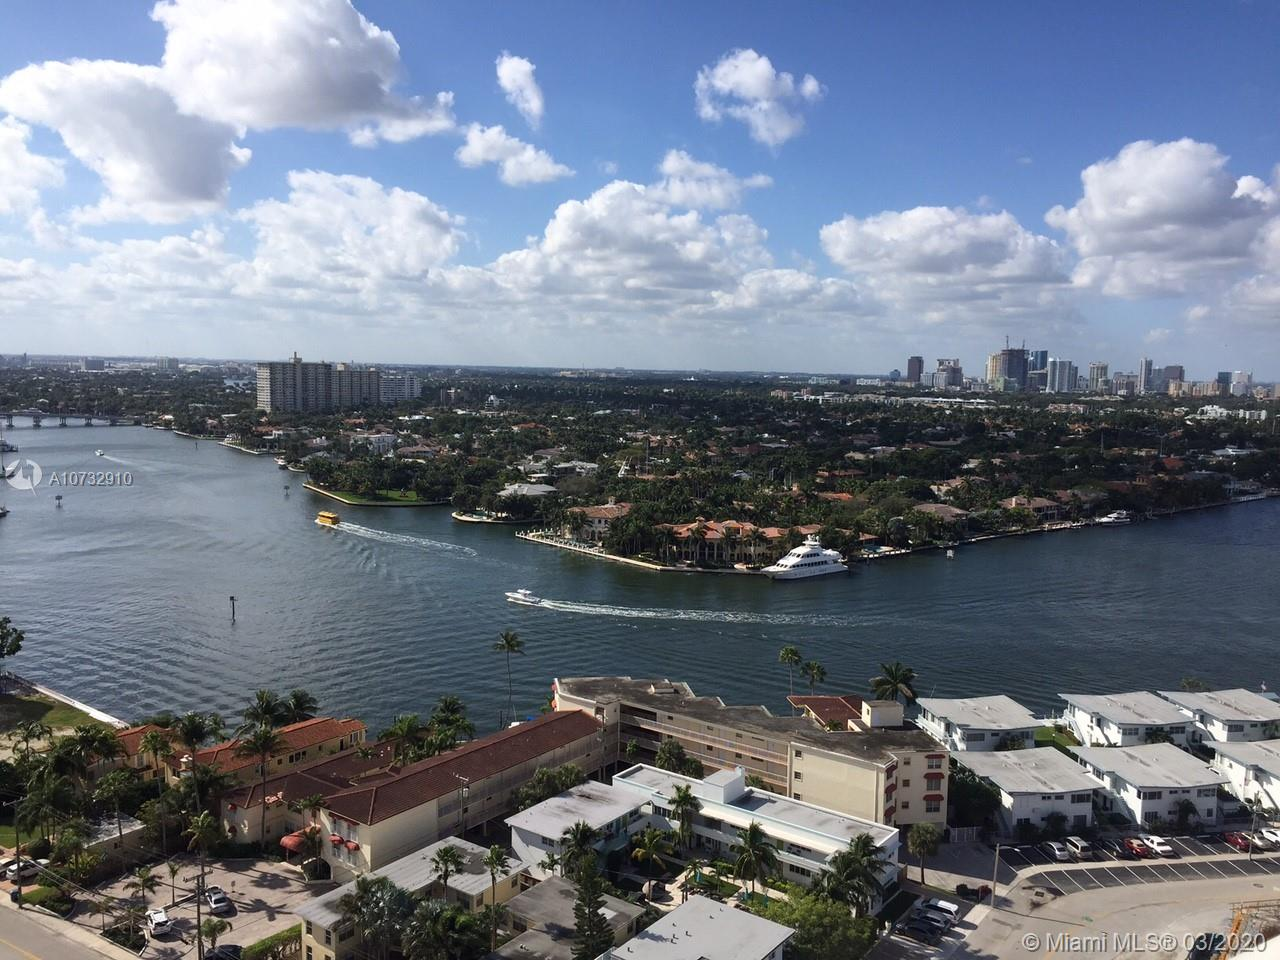 Magnificent Unit at the Newly Renovated W at Ft Lauderdale. Enjoy 1 bedroom 1 Bathroom furnished unit complete renovate by world-renowned design firm, Meyer Davis. Magnificent 9-foot floor-to-ceiling windows, Atlantic Ocean and Intracoastal Waterway views, sliding glass doors onto spacious balconies, living and dining areas entertainment system.  Access to all Hotel Luxury Amenities: Fitness Center, Hotel Pool, 954 Restaurant, Whiskey Bar, SPA and Salon, exercise room and more.  Rent it yourself or through the Hotel Program.  Estimate between $42K and $44K per year in Net rental income.